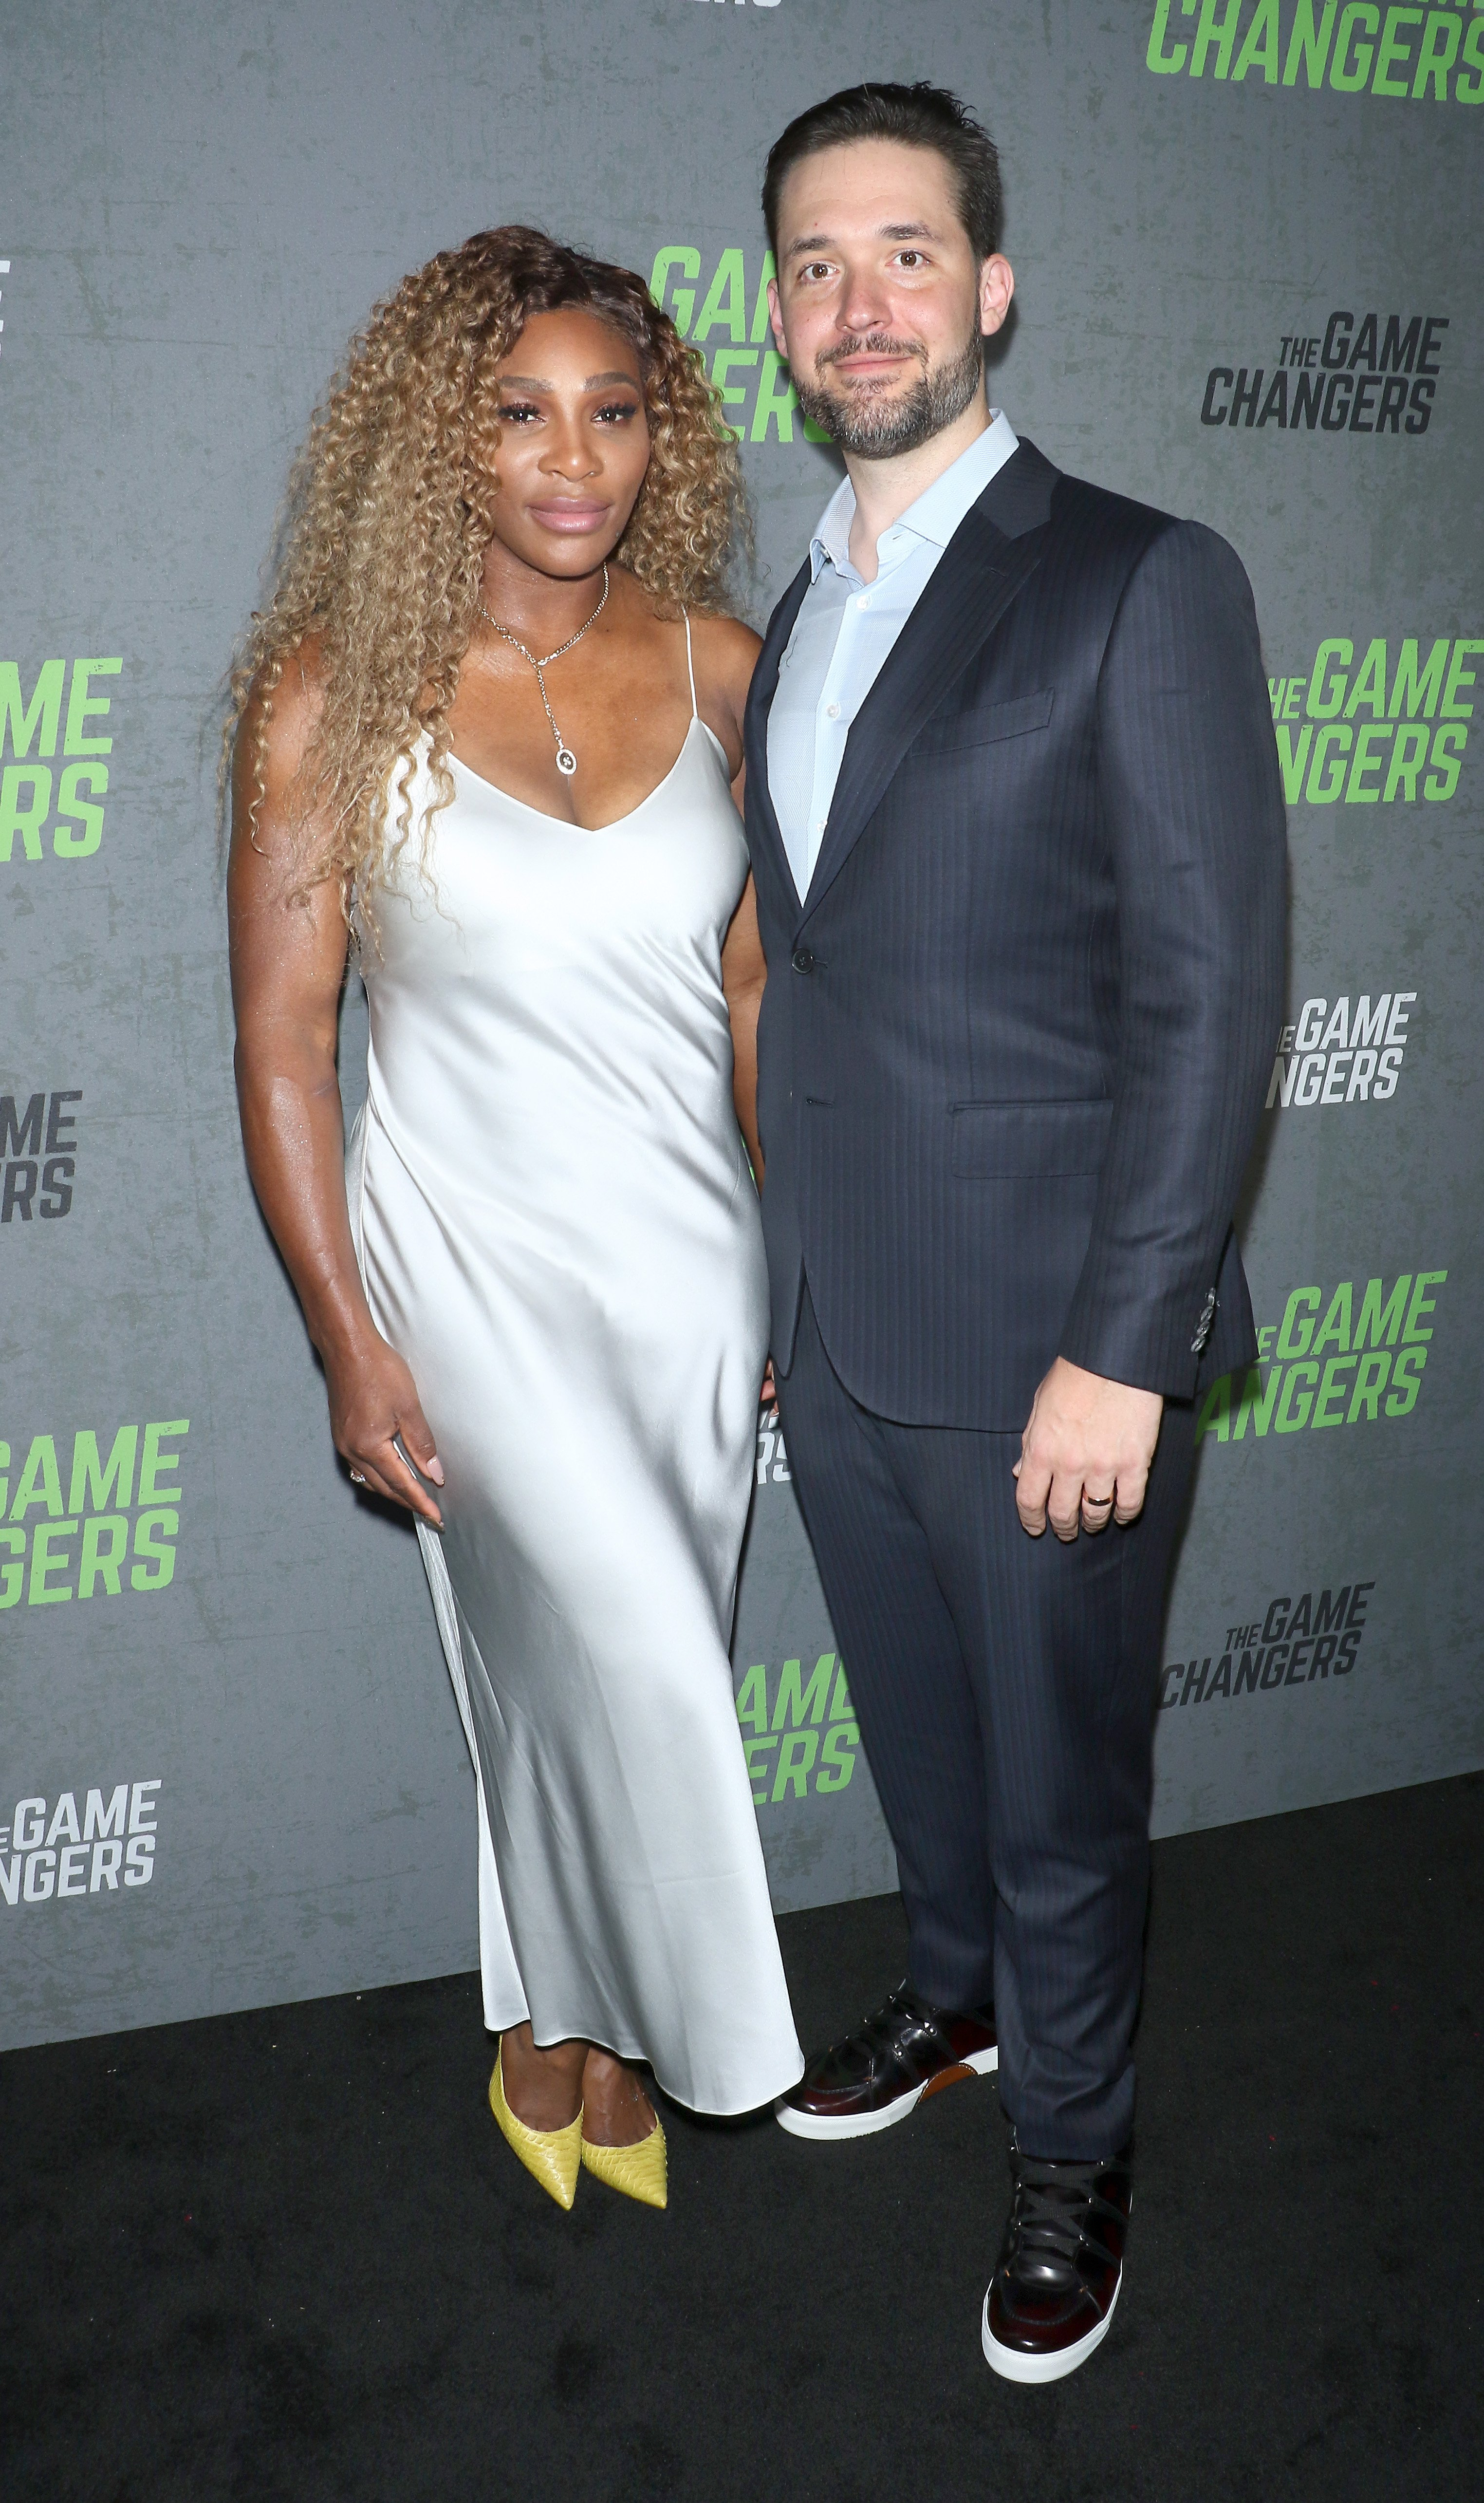 """Serena Williams and Alexis Ohanian attend """"The Game Changers"""" New York premiere on September 09, 2019 